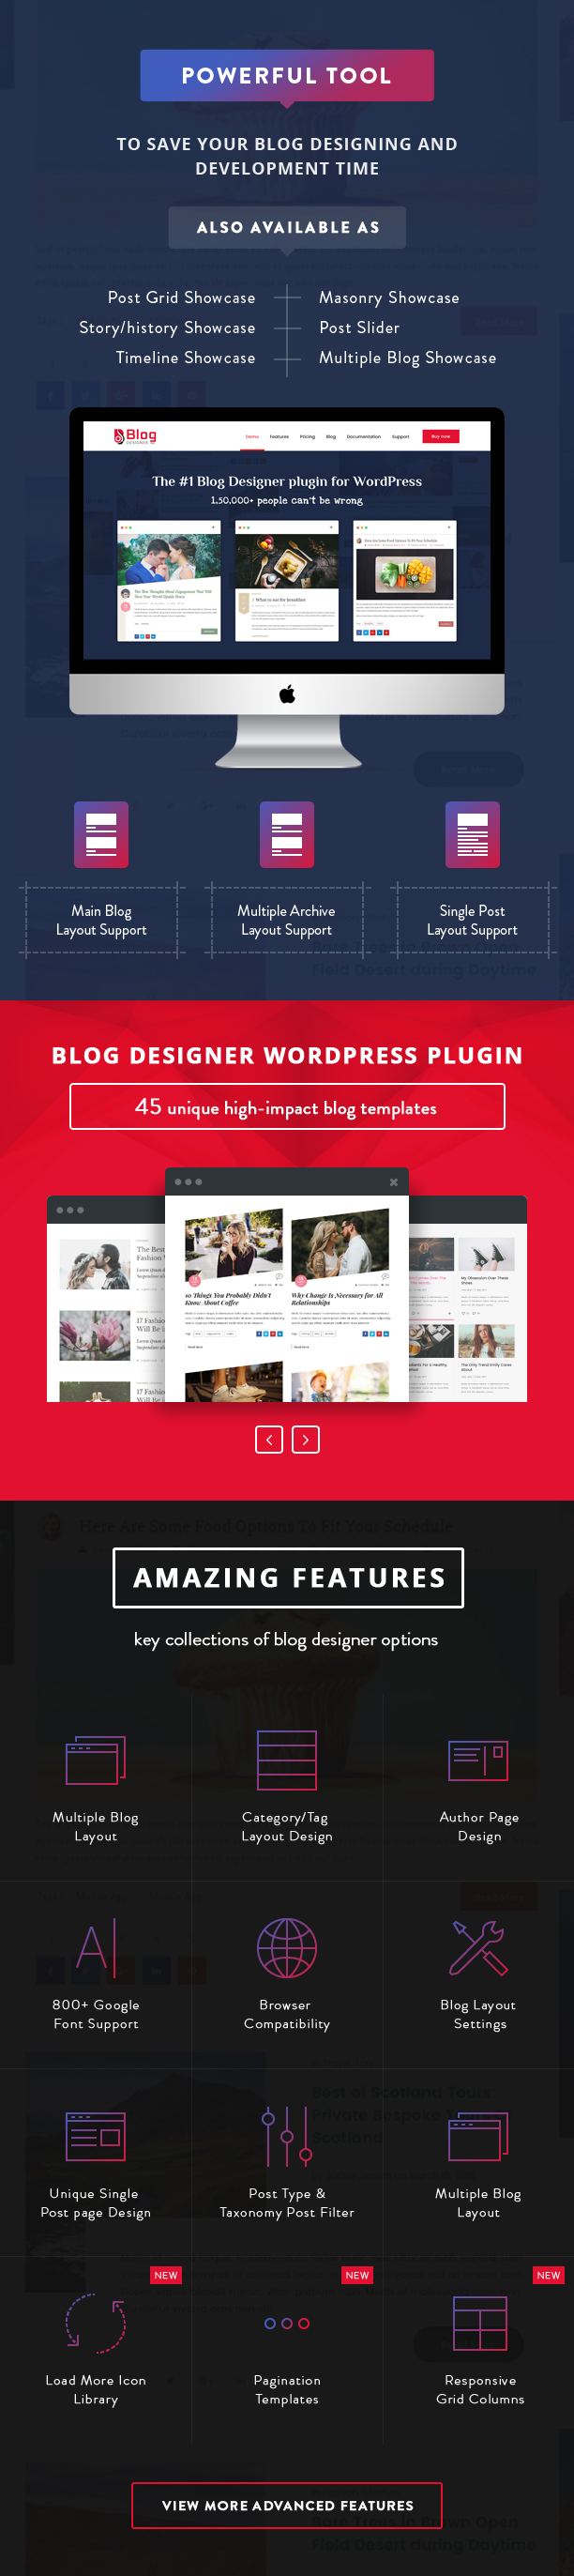 Blog Designer PRO Features